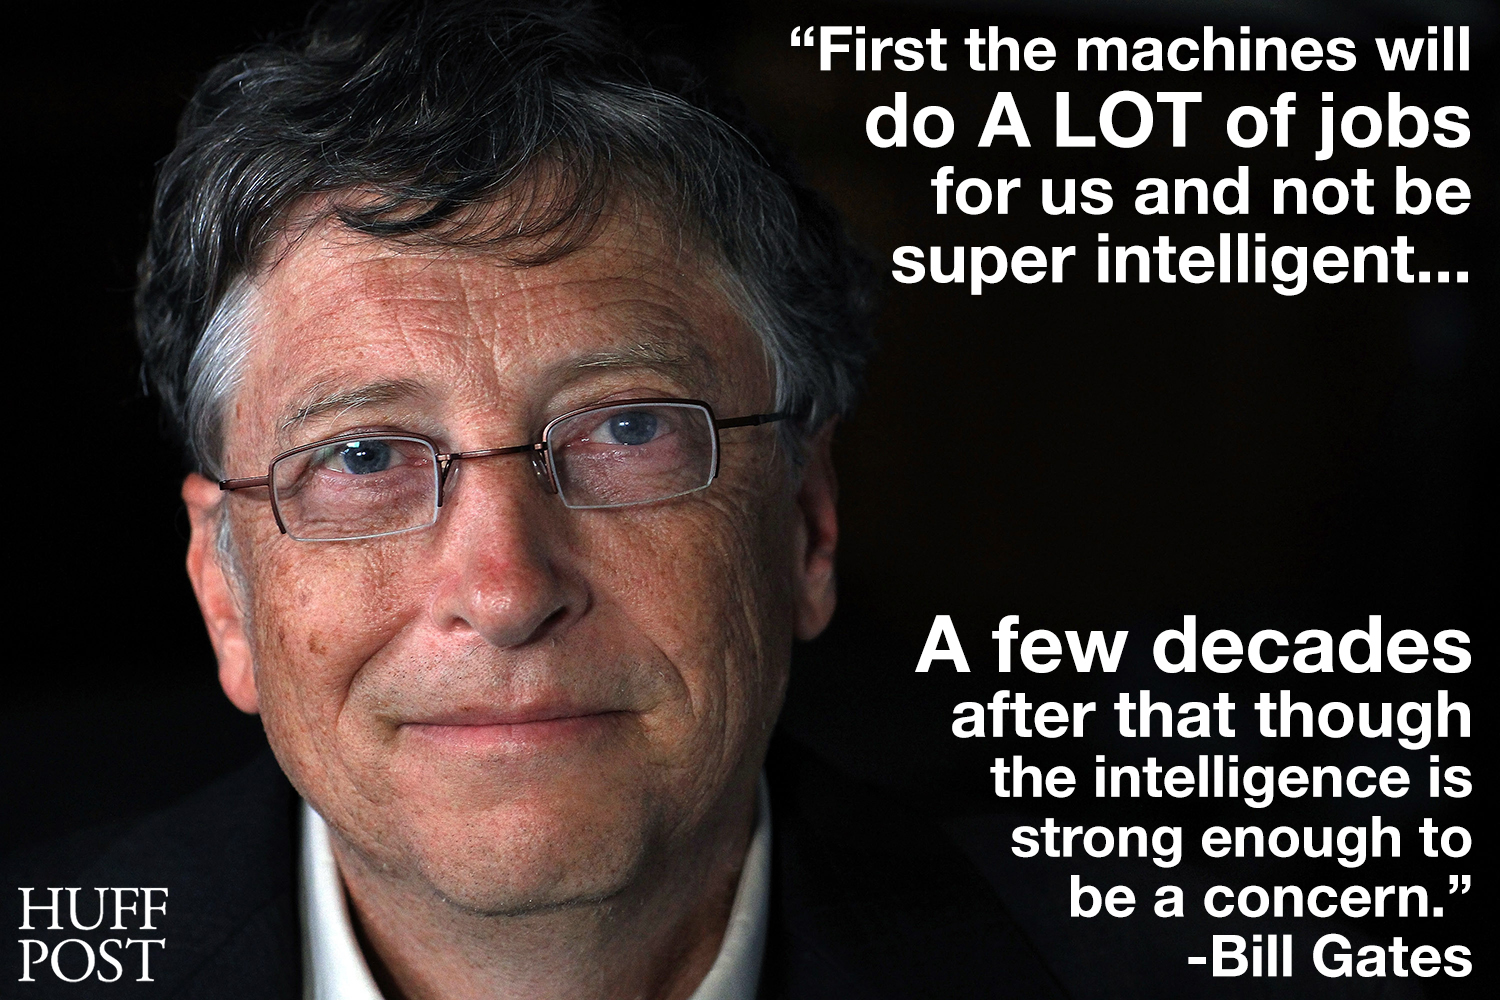 Artificial Intelligence, Democracy, Bill Gates, Algorithms, Code, Threats, Machine learning, meta democracy, wasteless future, citizens, people